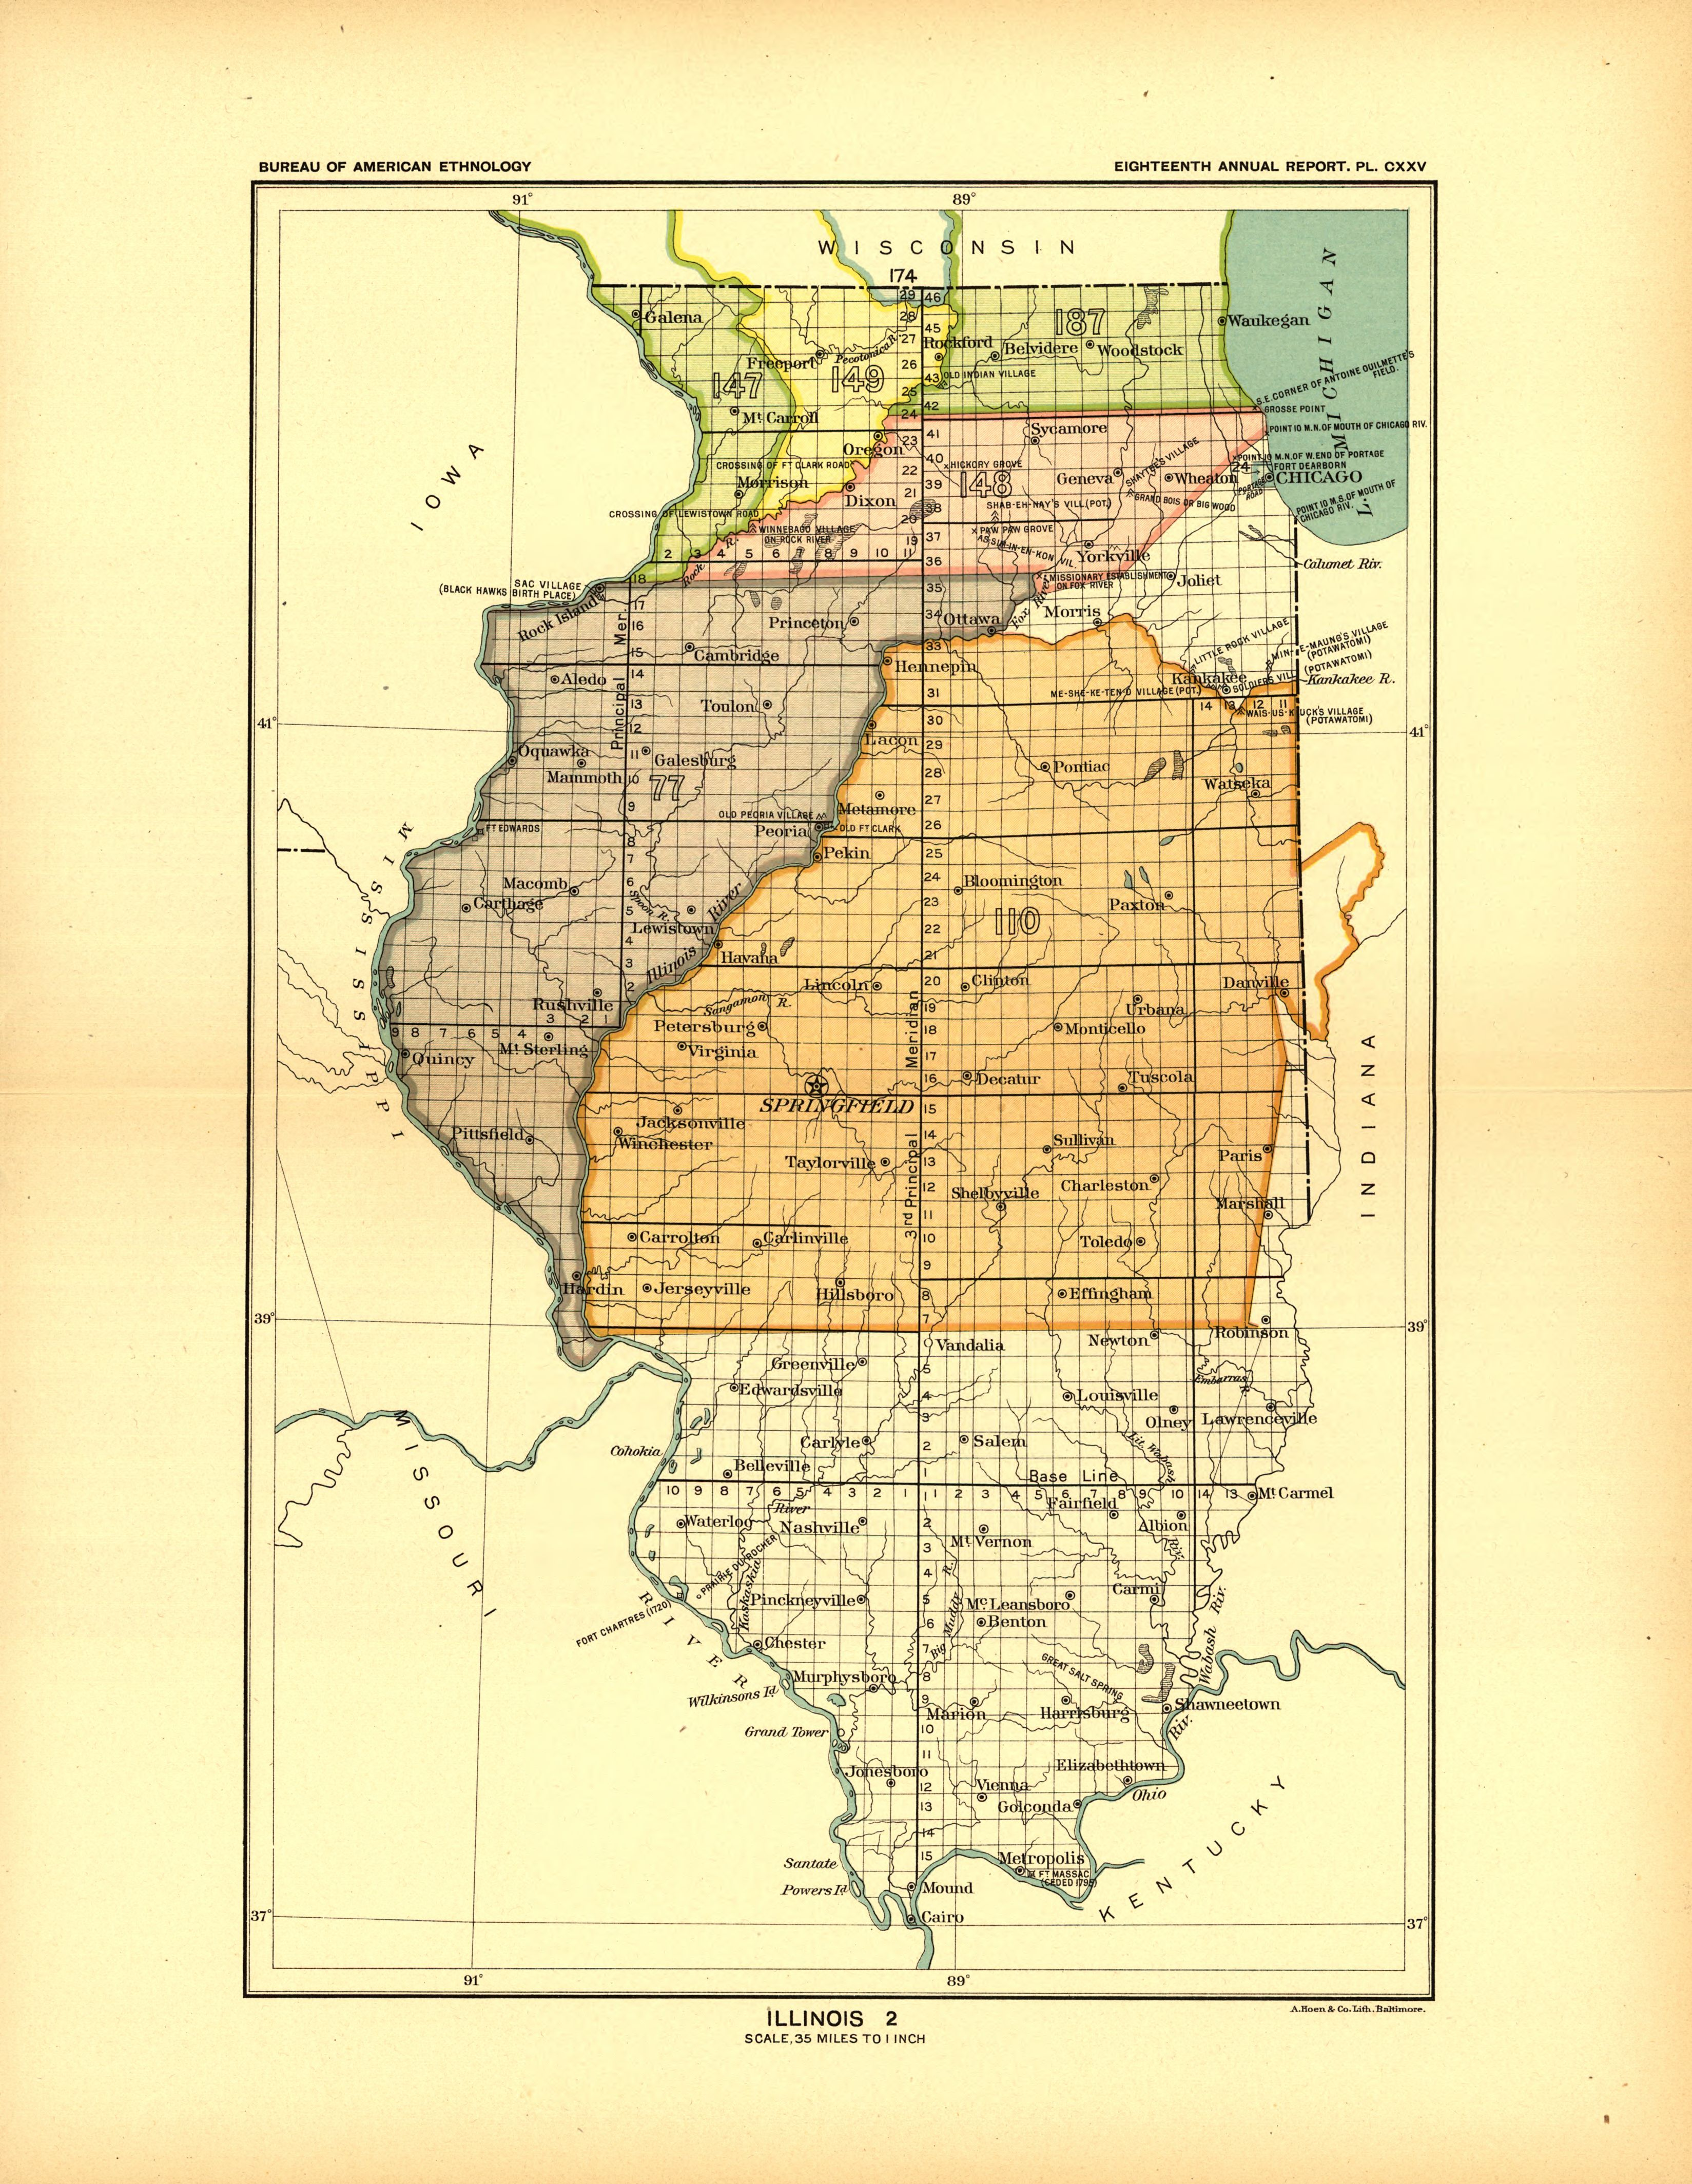 Missouri Indian Tribe Map : missouri, indian, tribe, History, Chicago, Tribes, Access, Genealogy